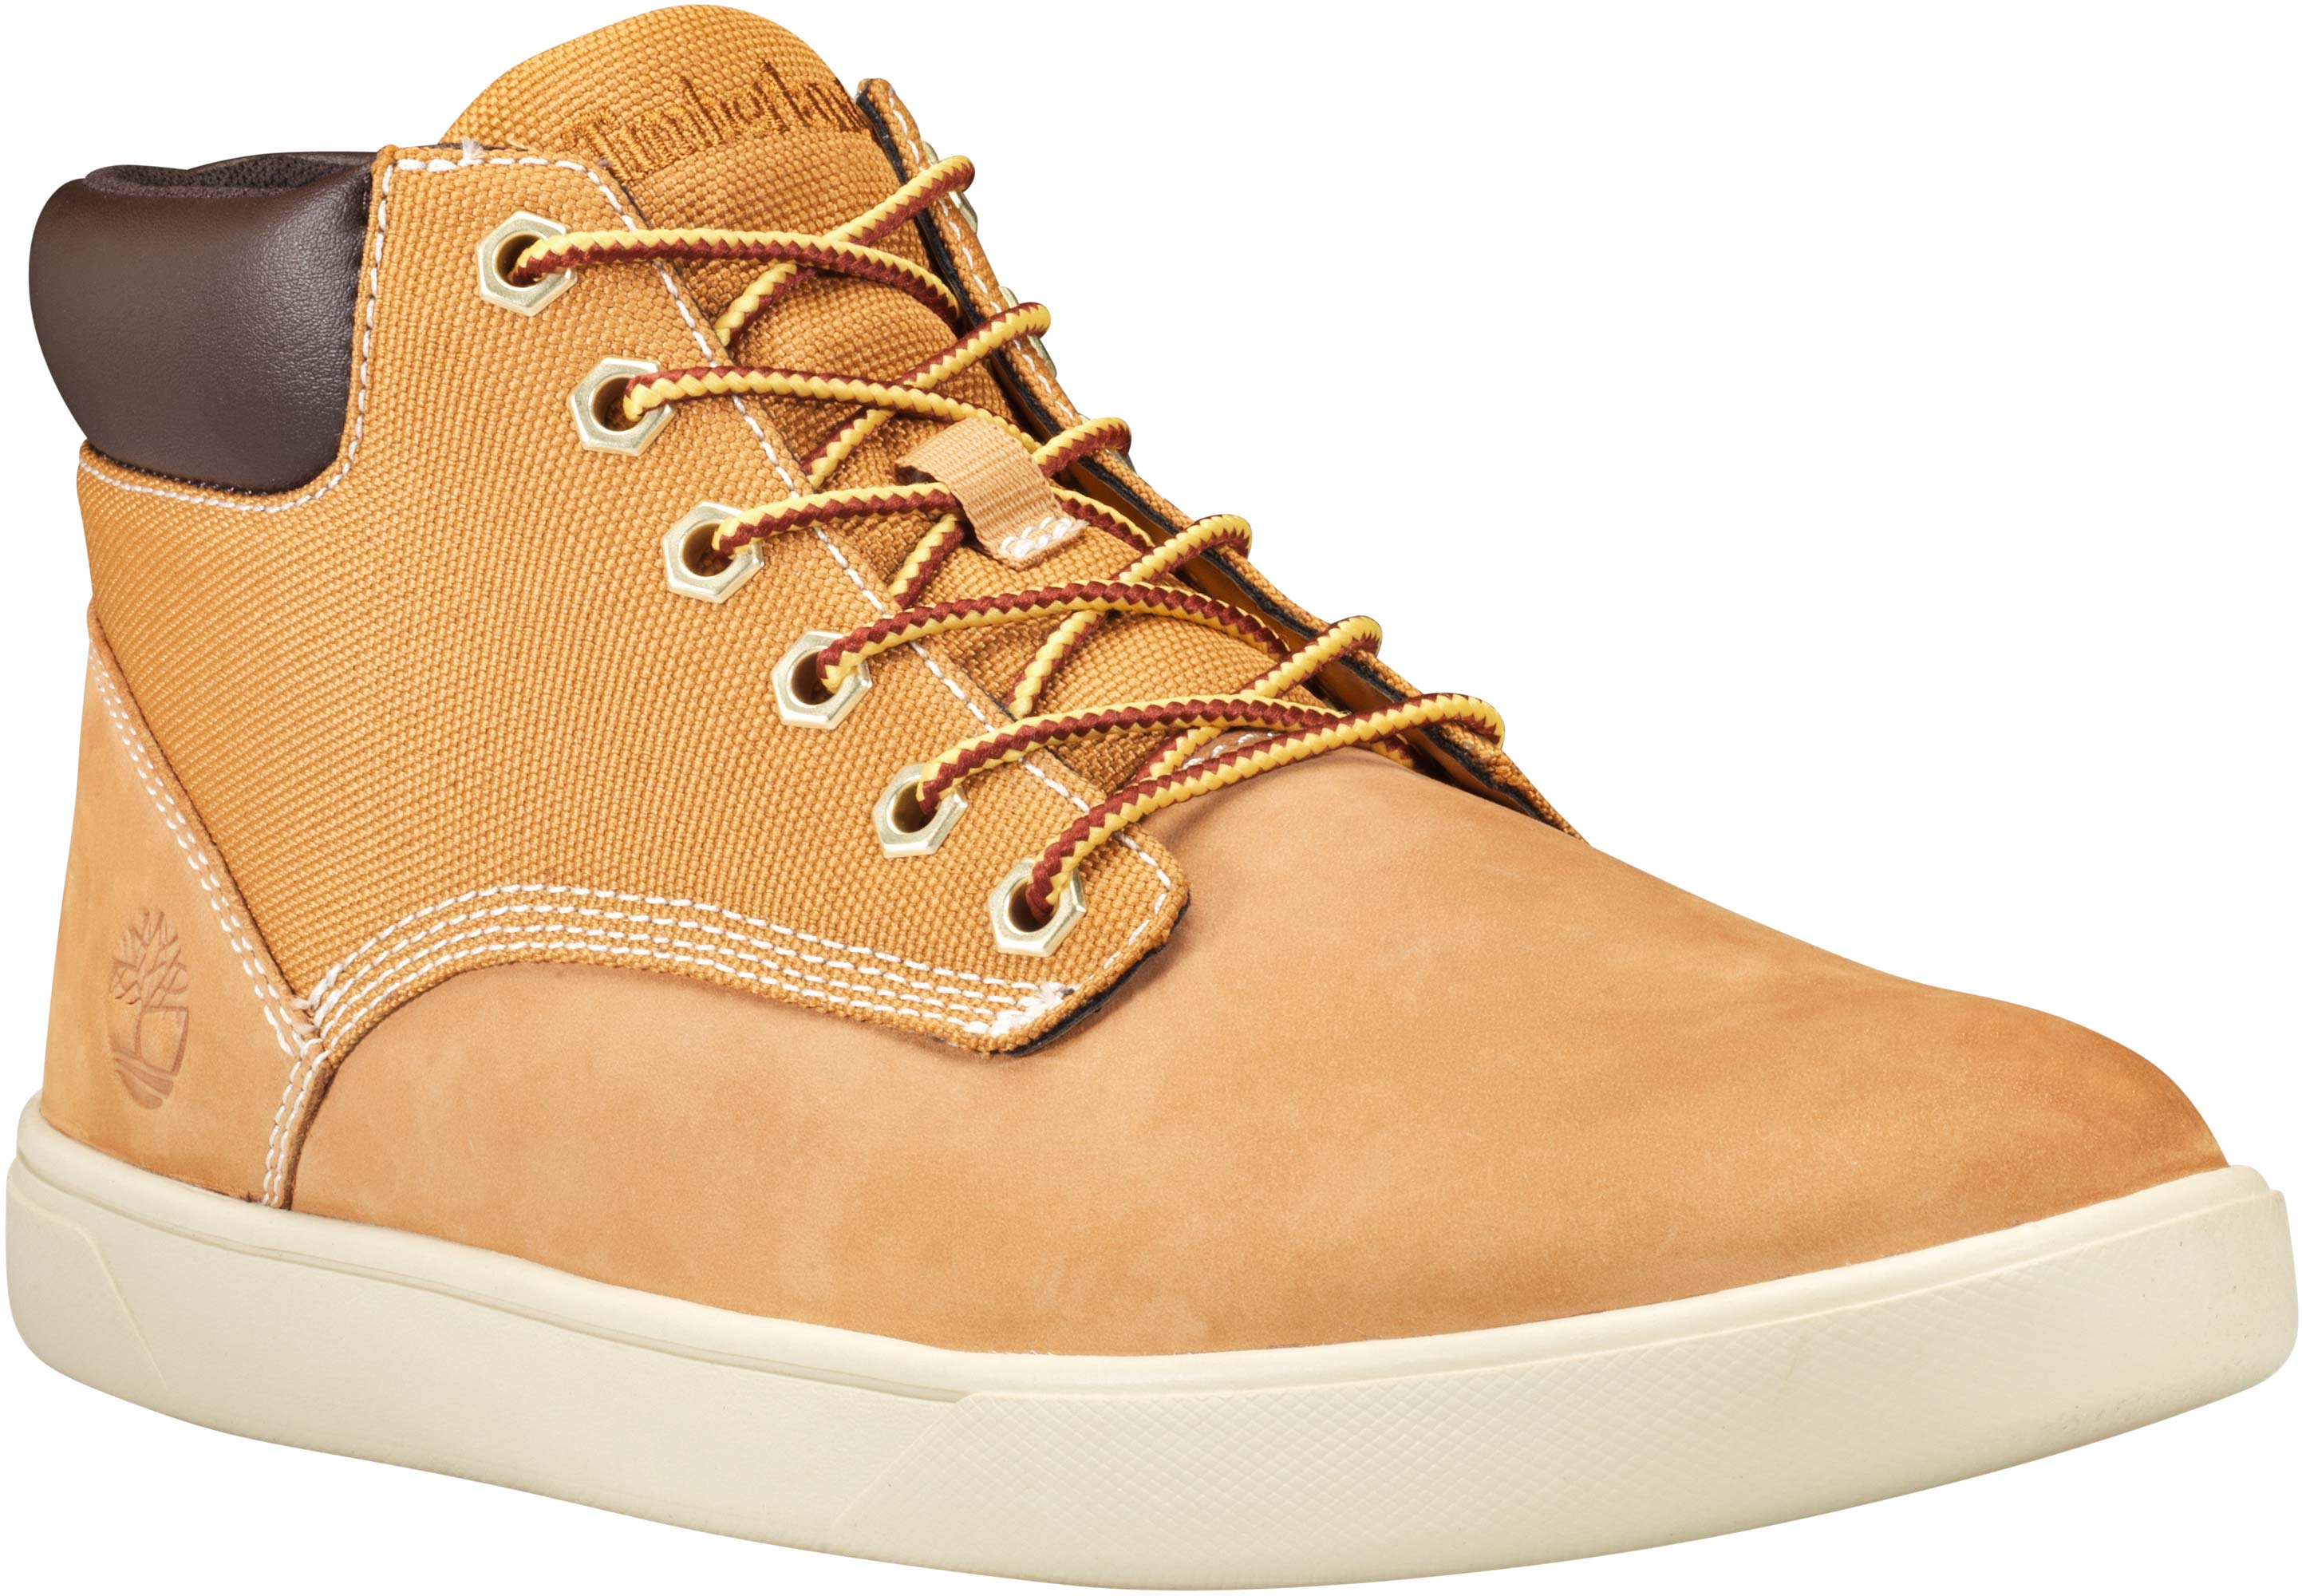 Timberland Groveton Wheat Men's Leather & Fabric Chukka Sneakers TB0A1115